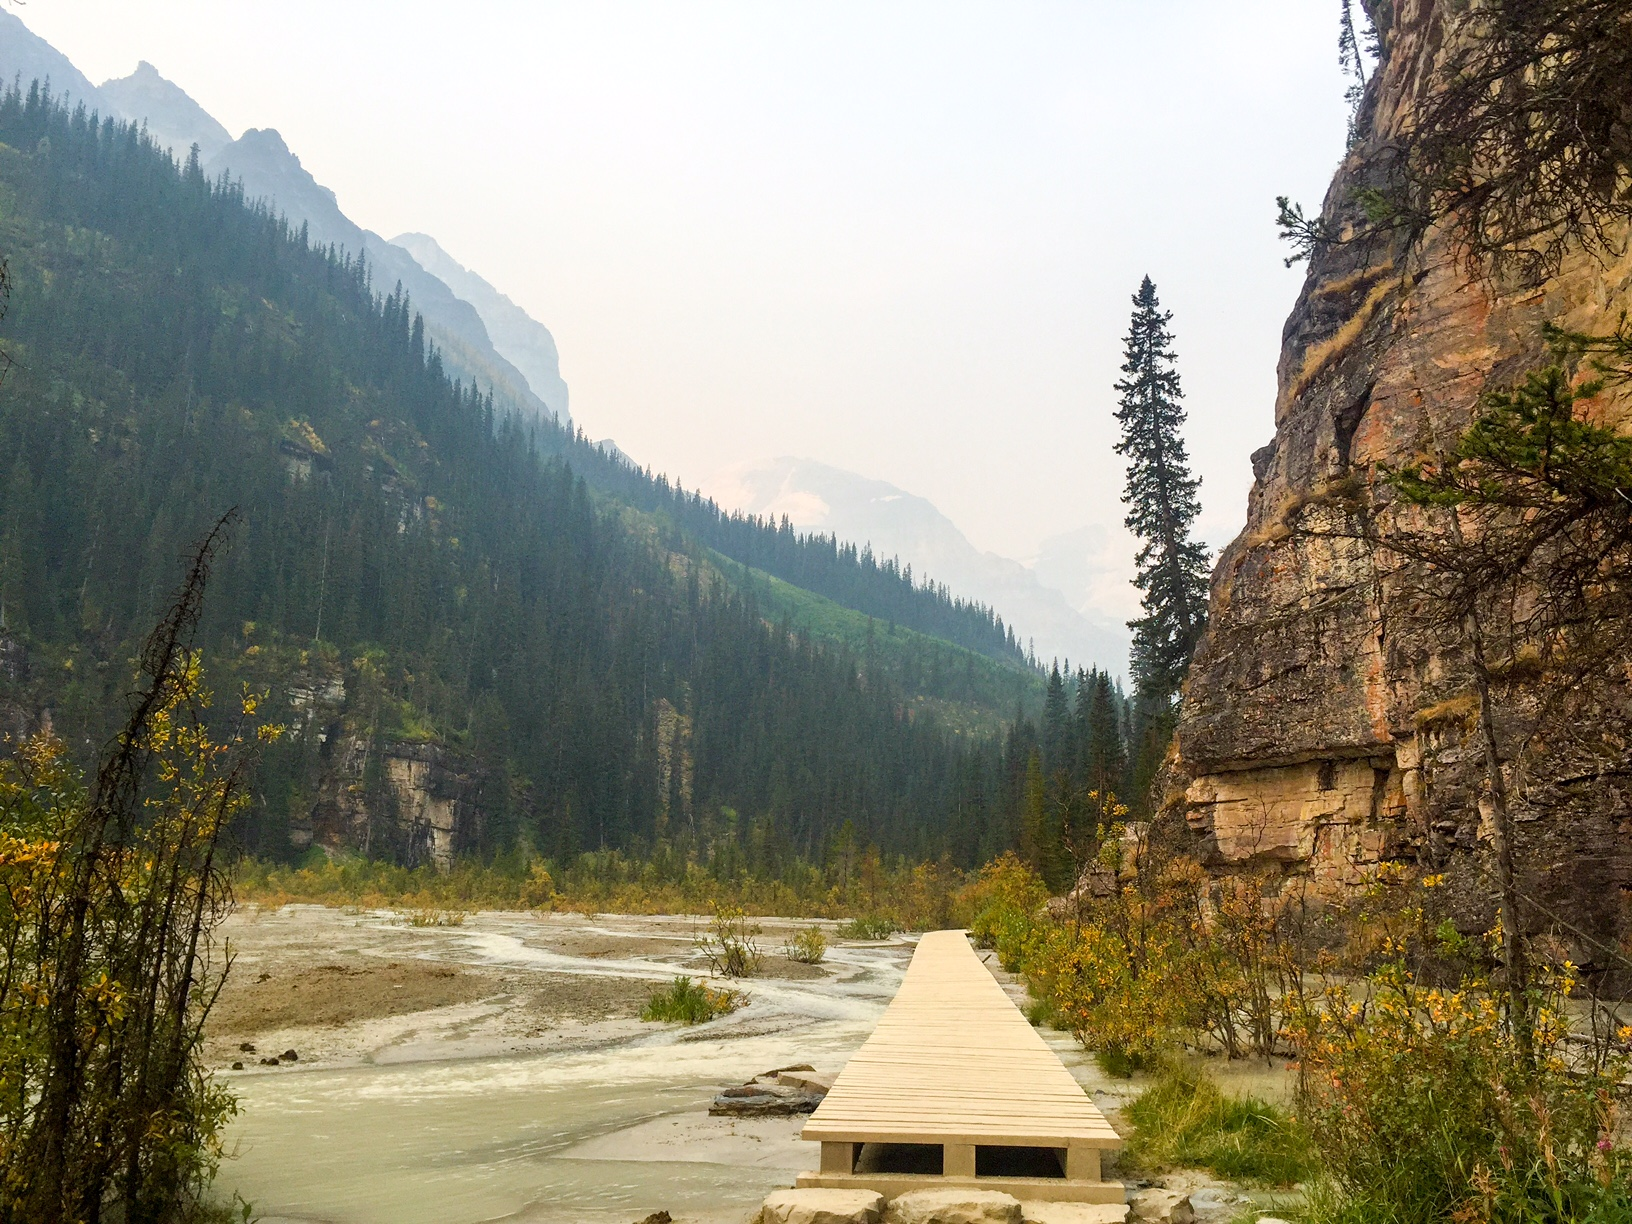 The hike starts at Lake Louise...just keep following the path allllll around